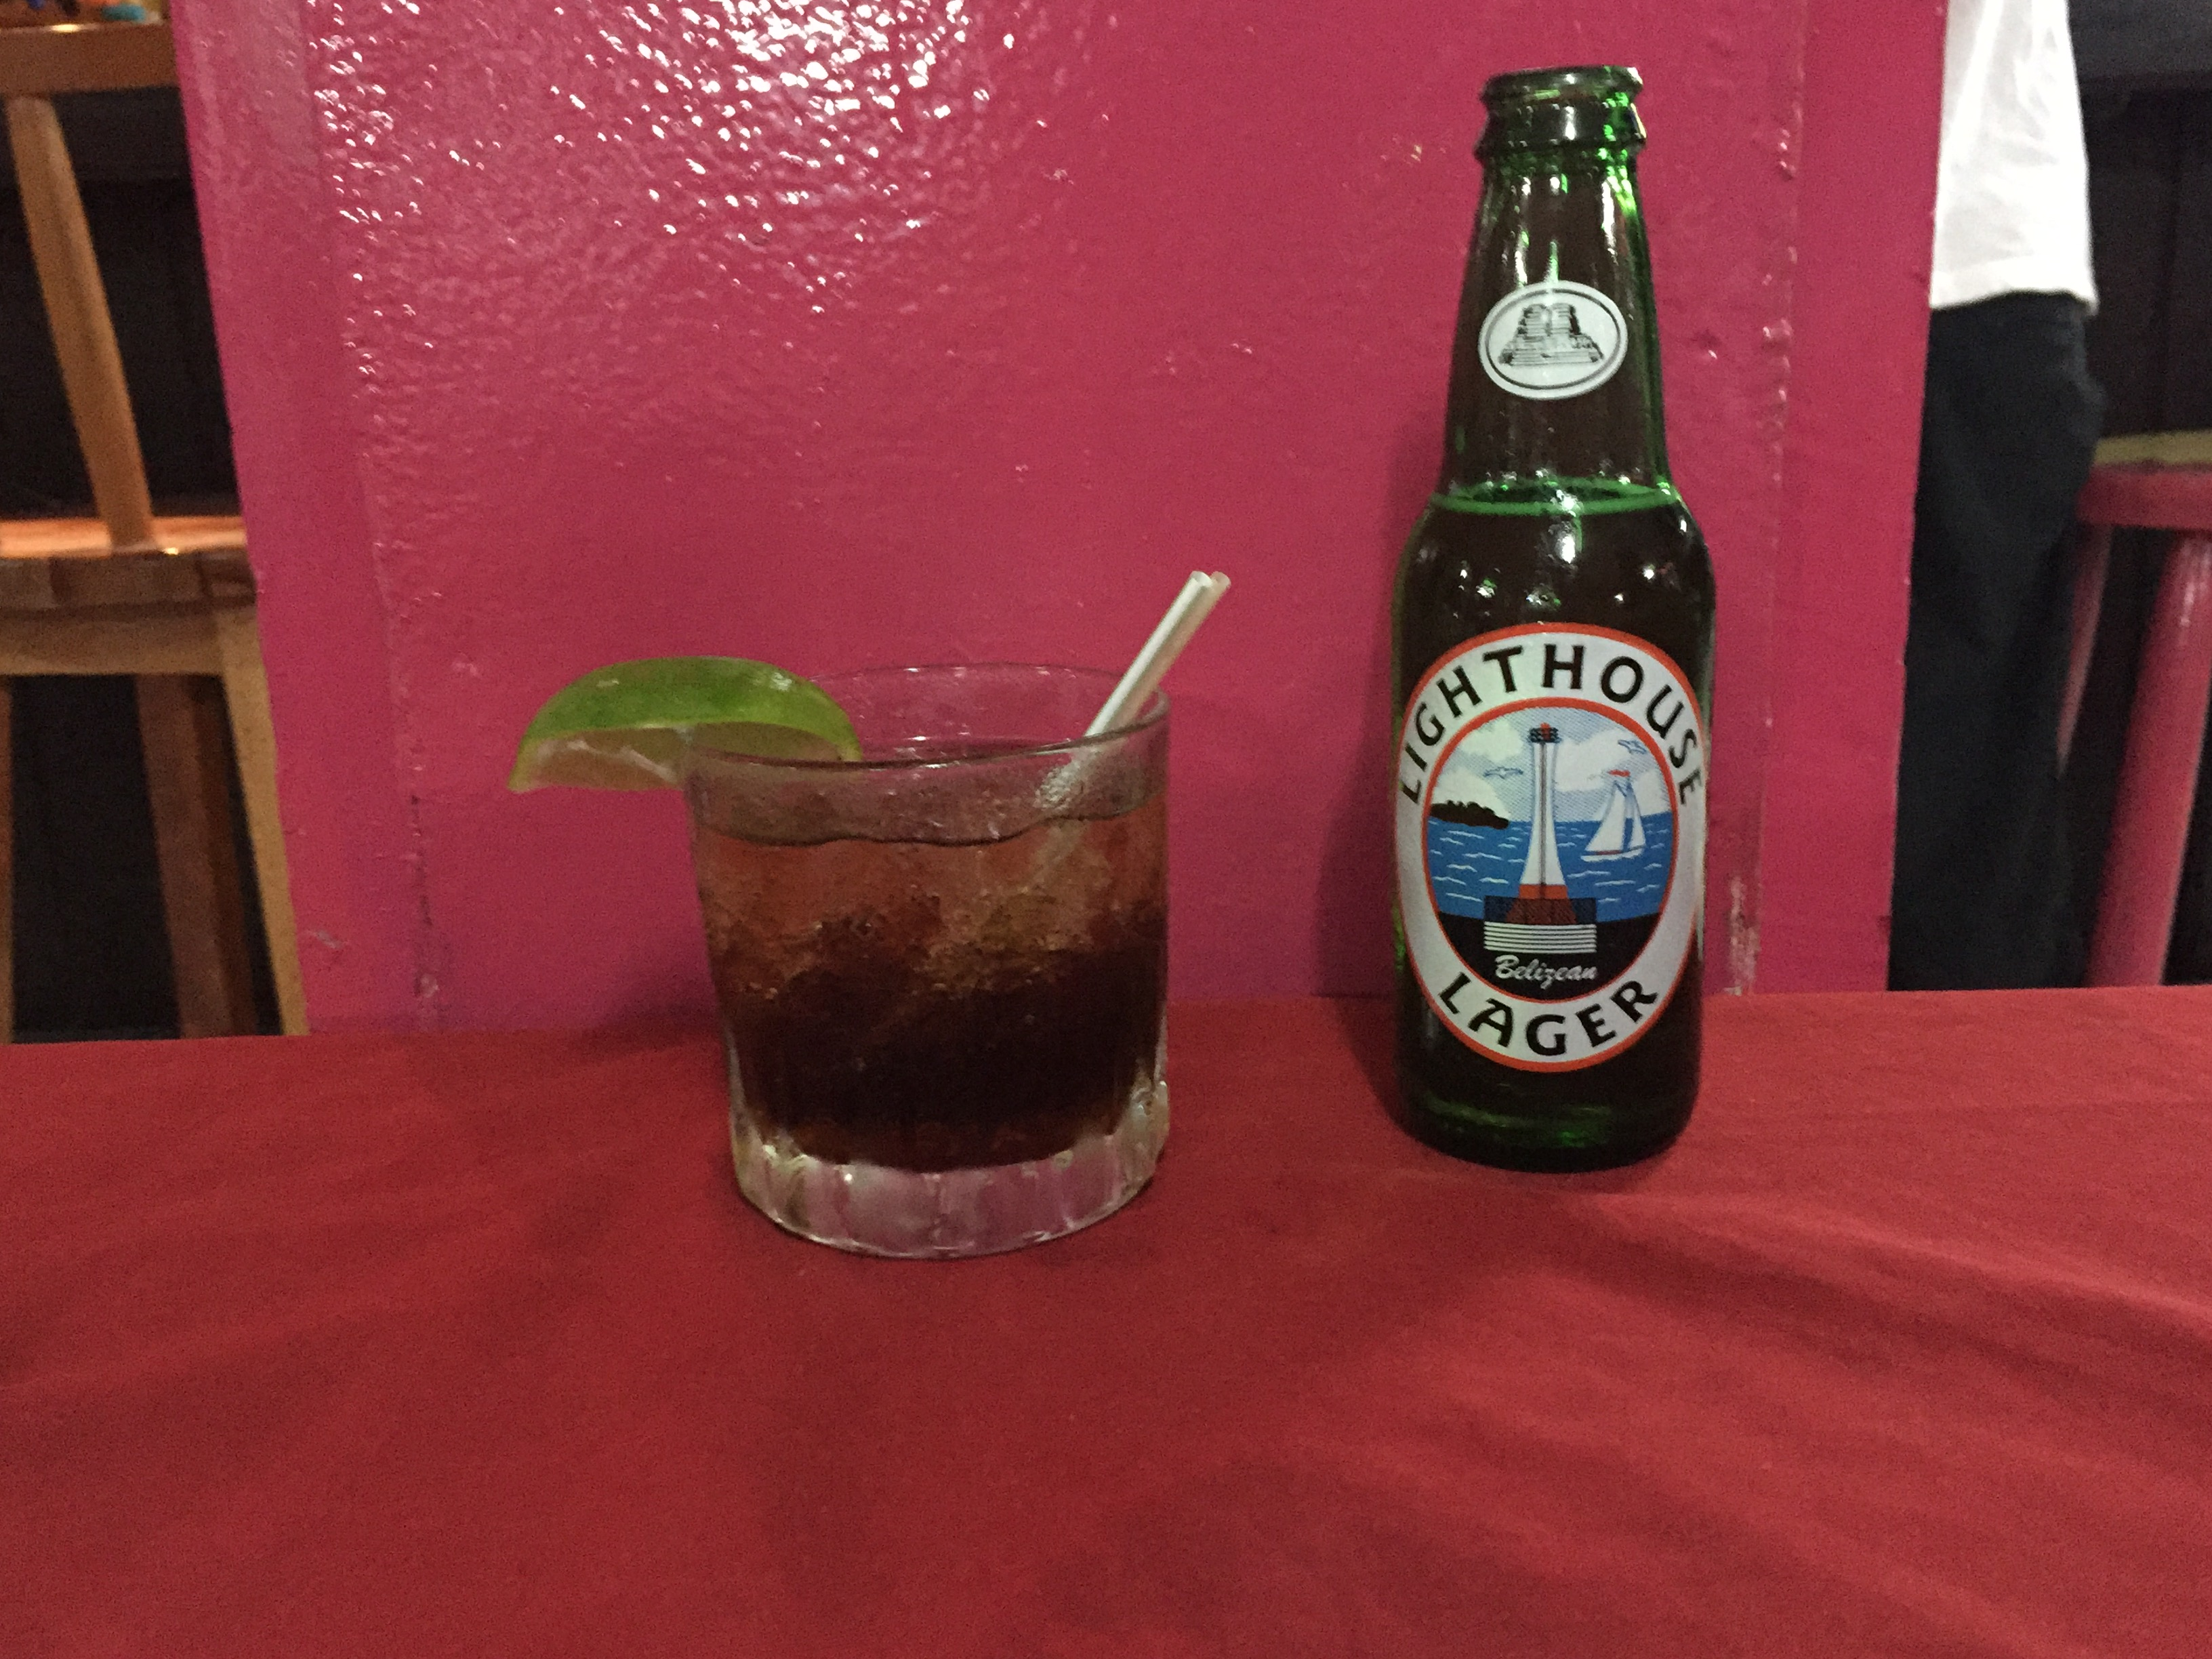 $5 Rum and Coke and Lighthouse light beer